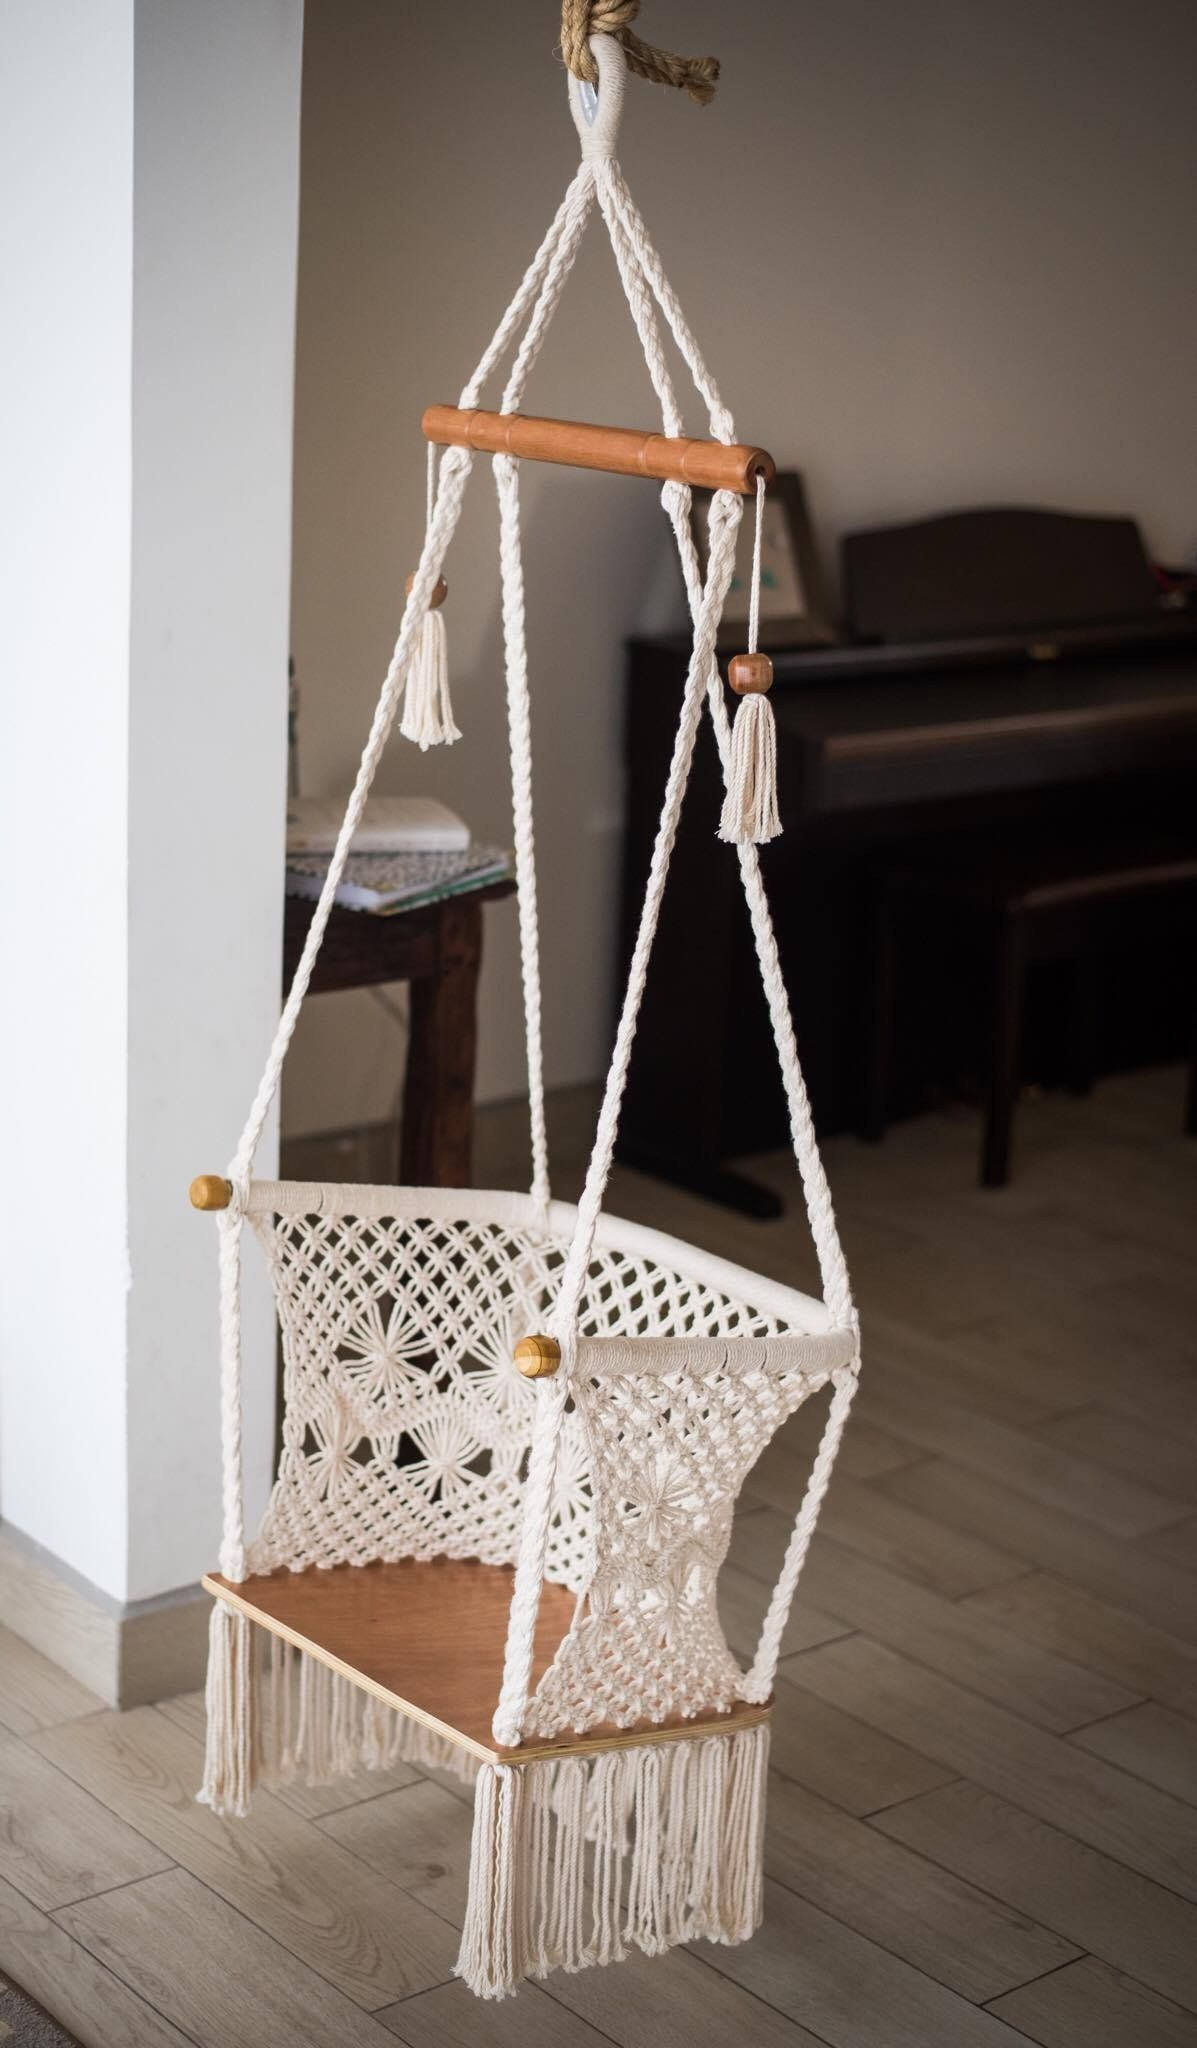 Macrame Hammock Swing Chair With Wood Bottom Handmade in